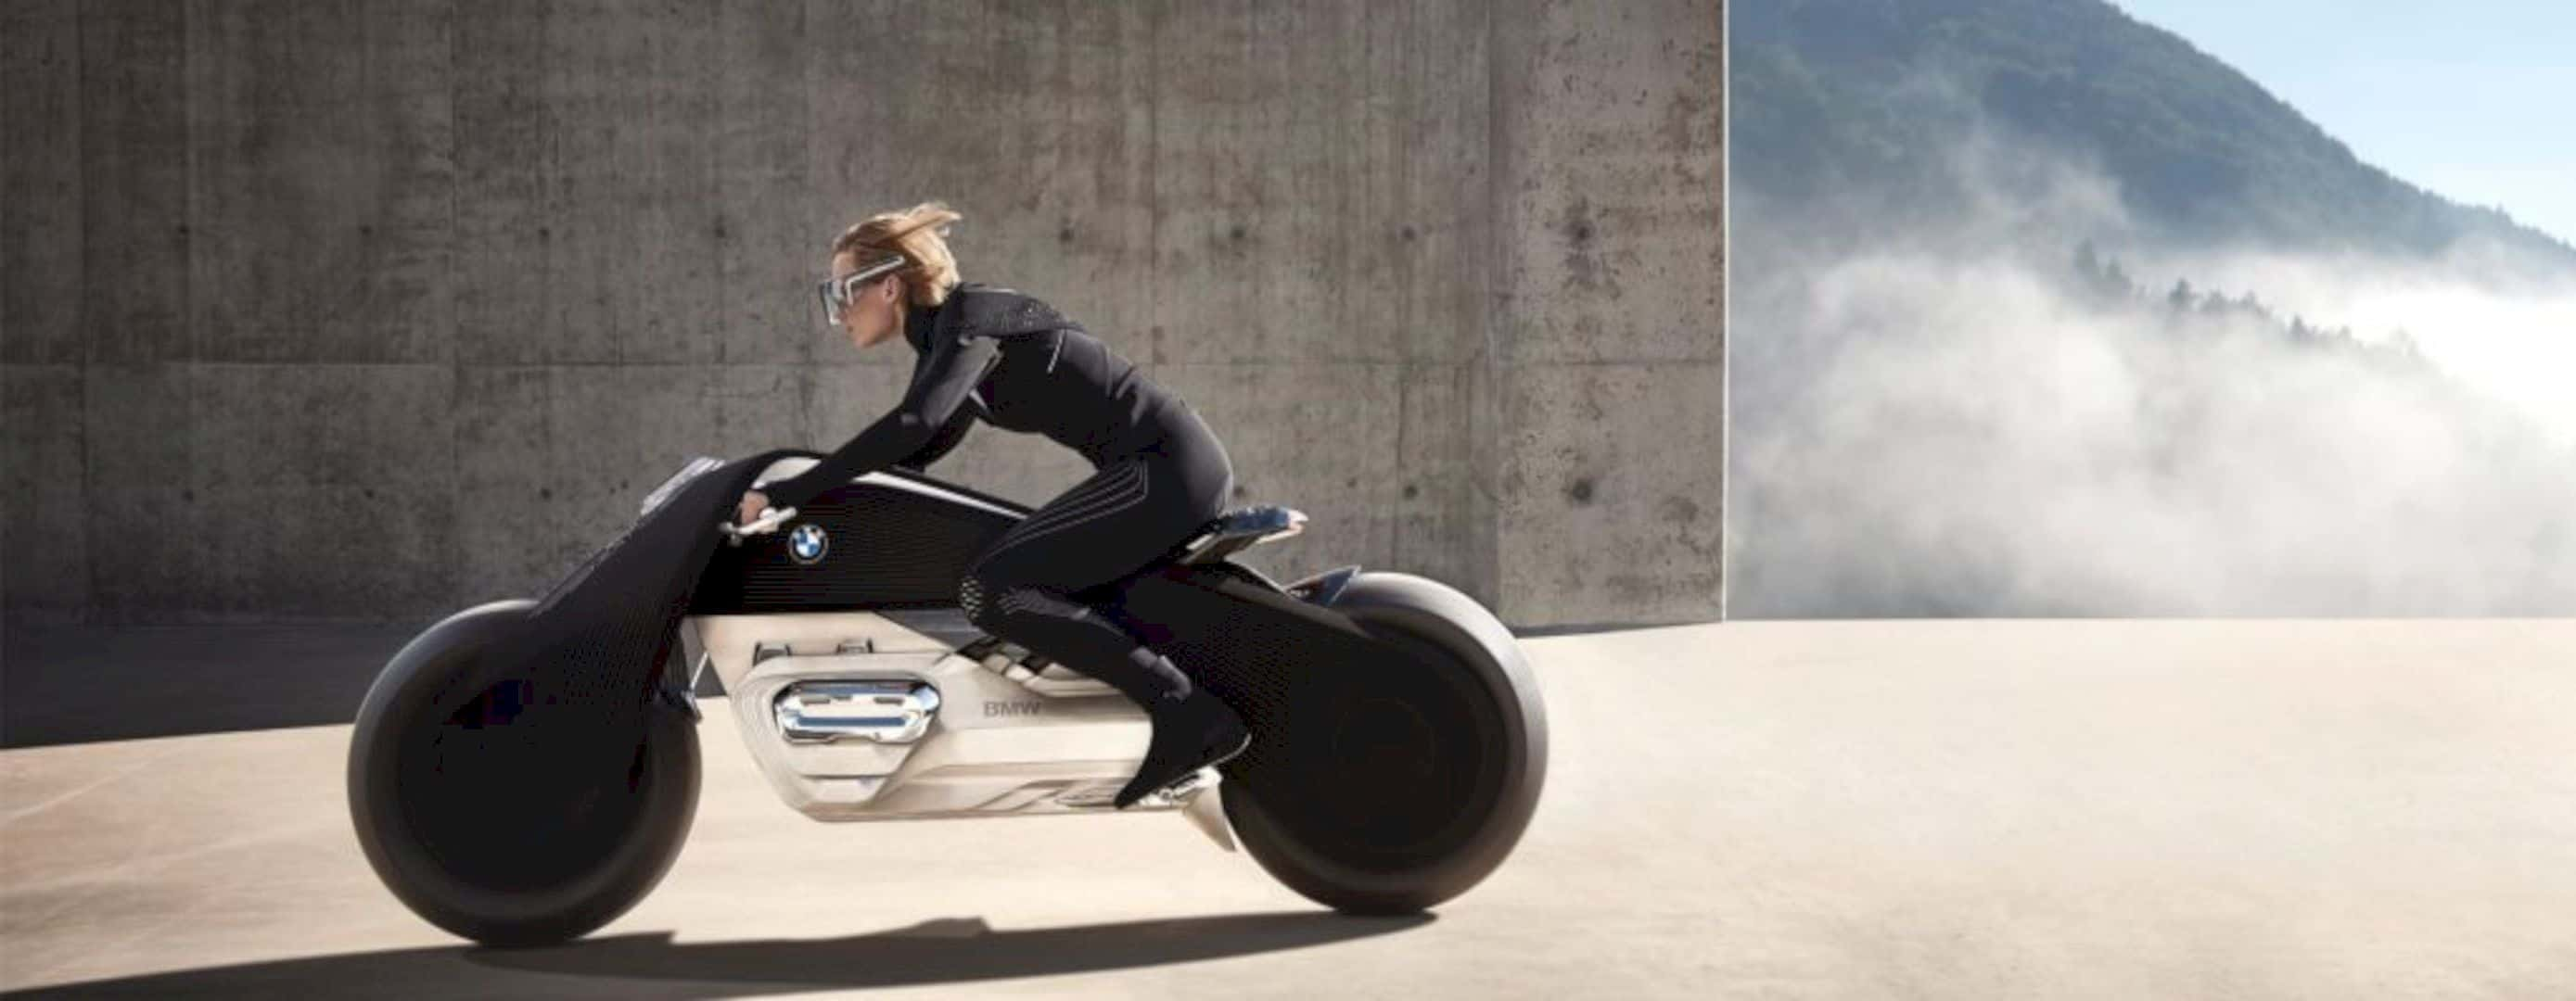 The Bmw Vision Next 100 Concept Motorcycle 7